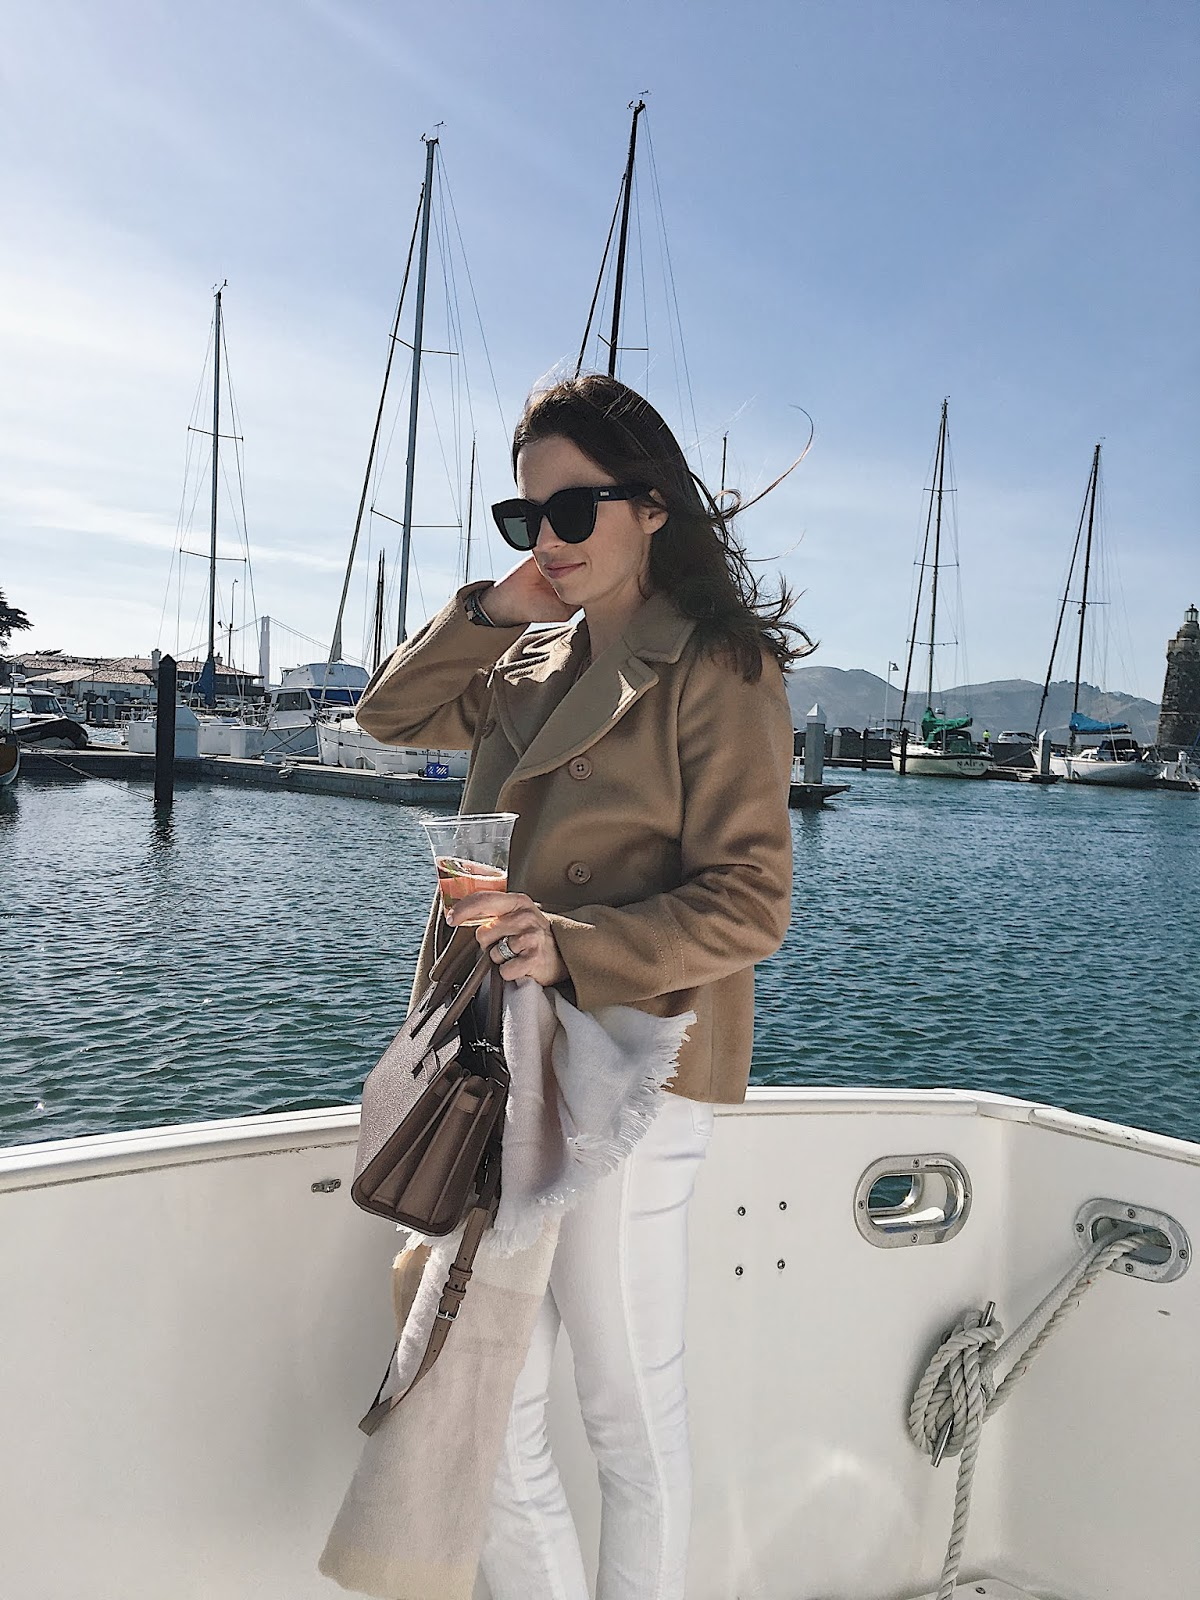 blogger on a boat